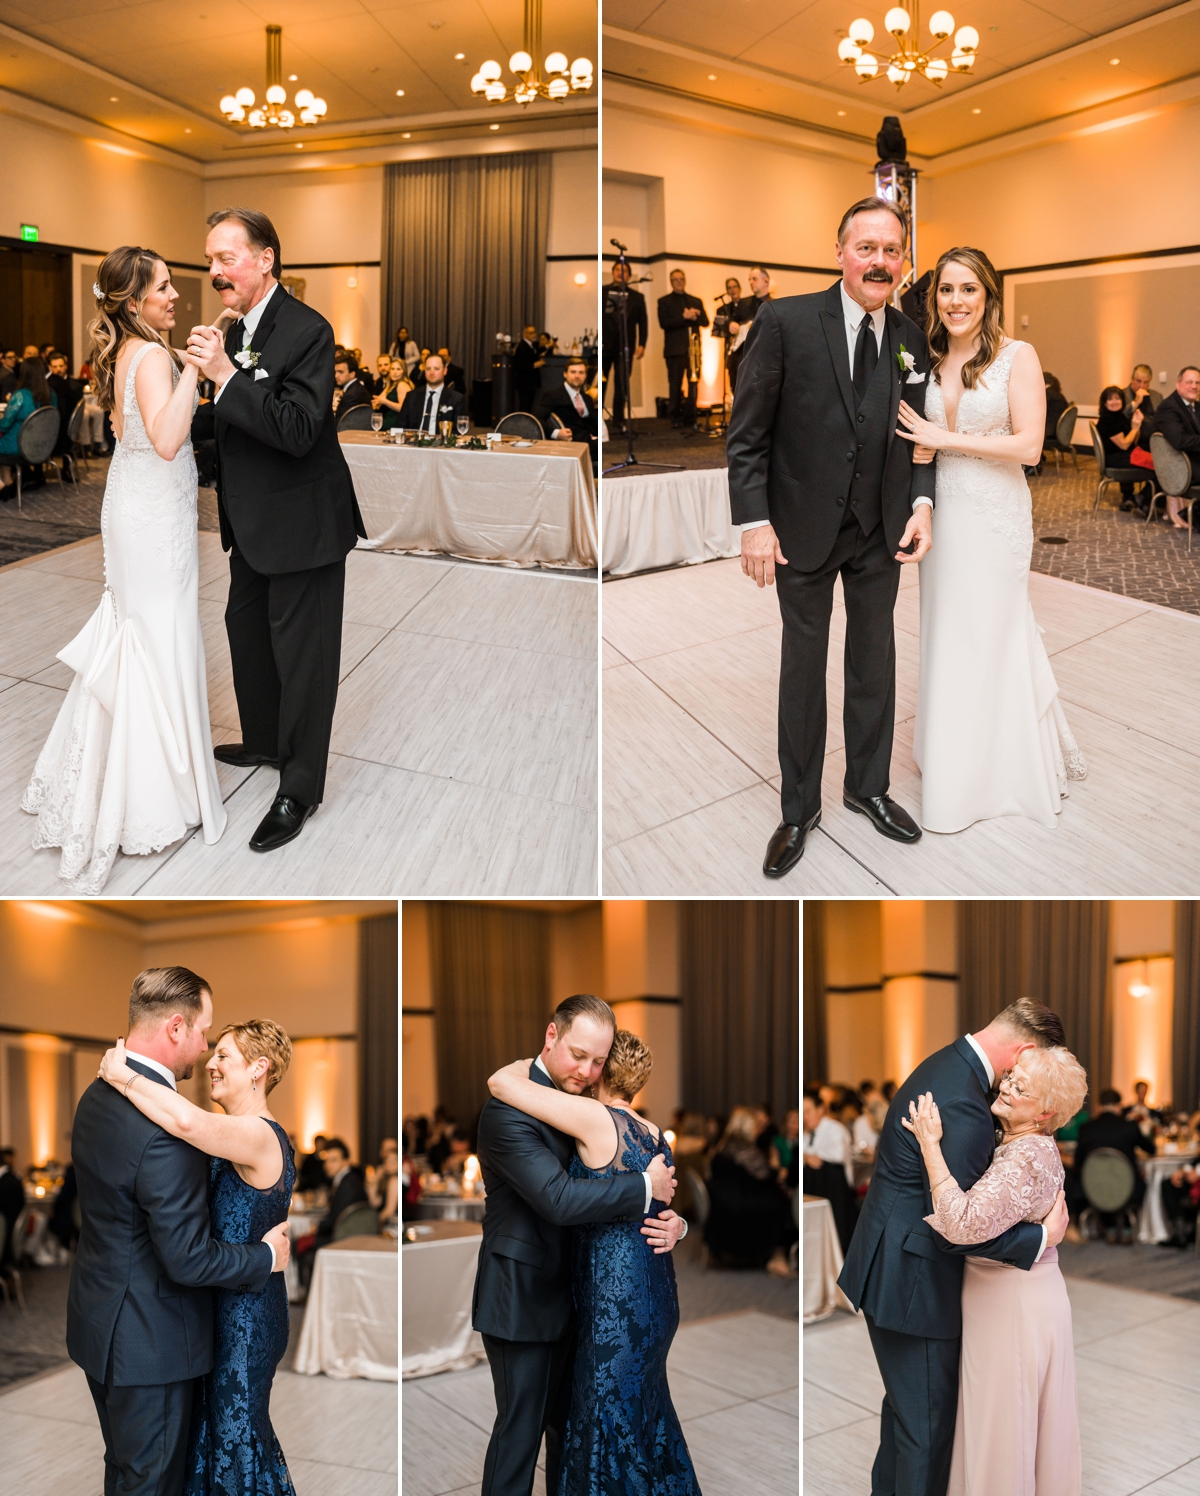 Special First Dances with parents and grandparents at Houston Hotel Wedding